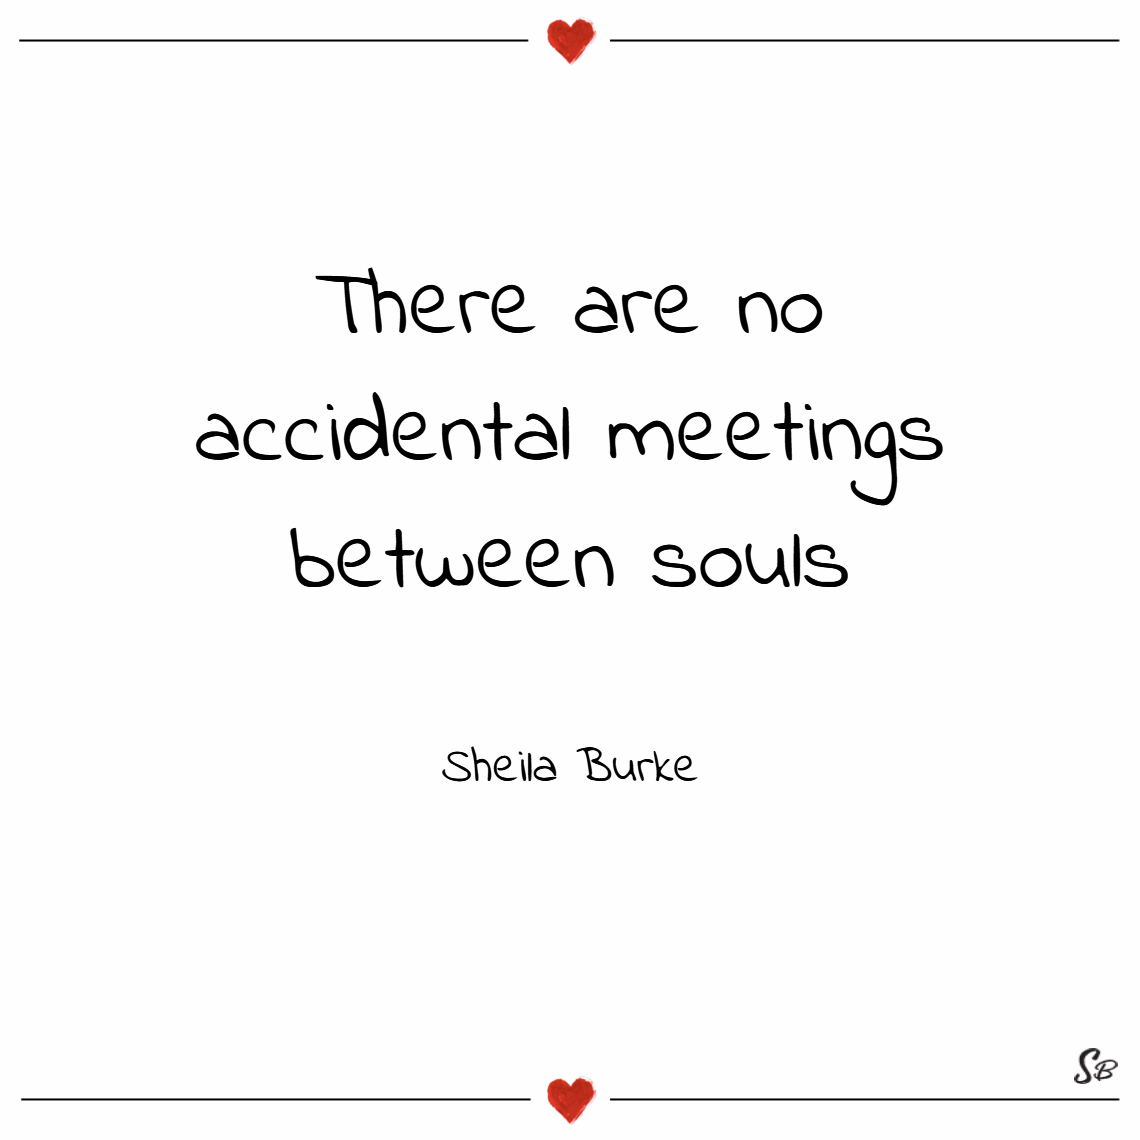 There are no accidental meetings between souls. – sheila burke soulmate quotes